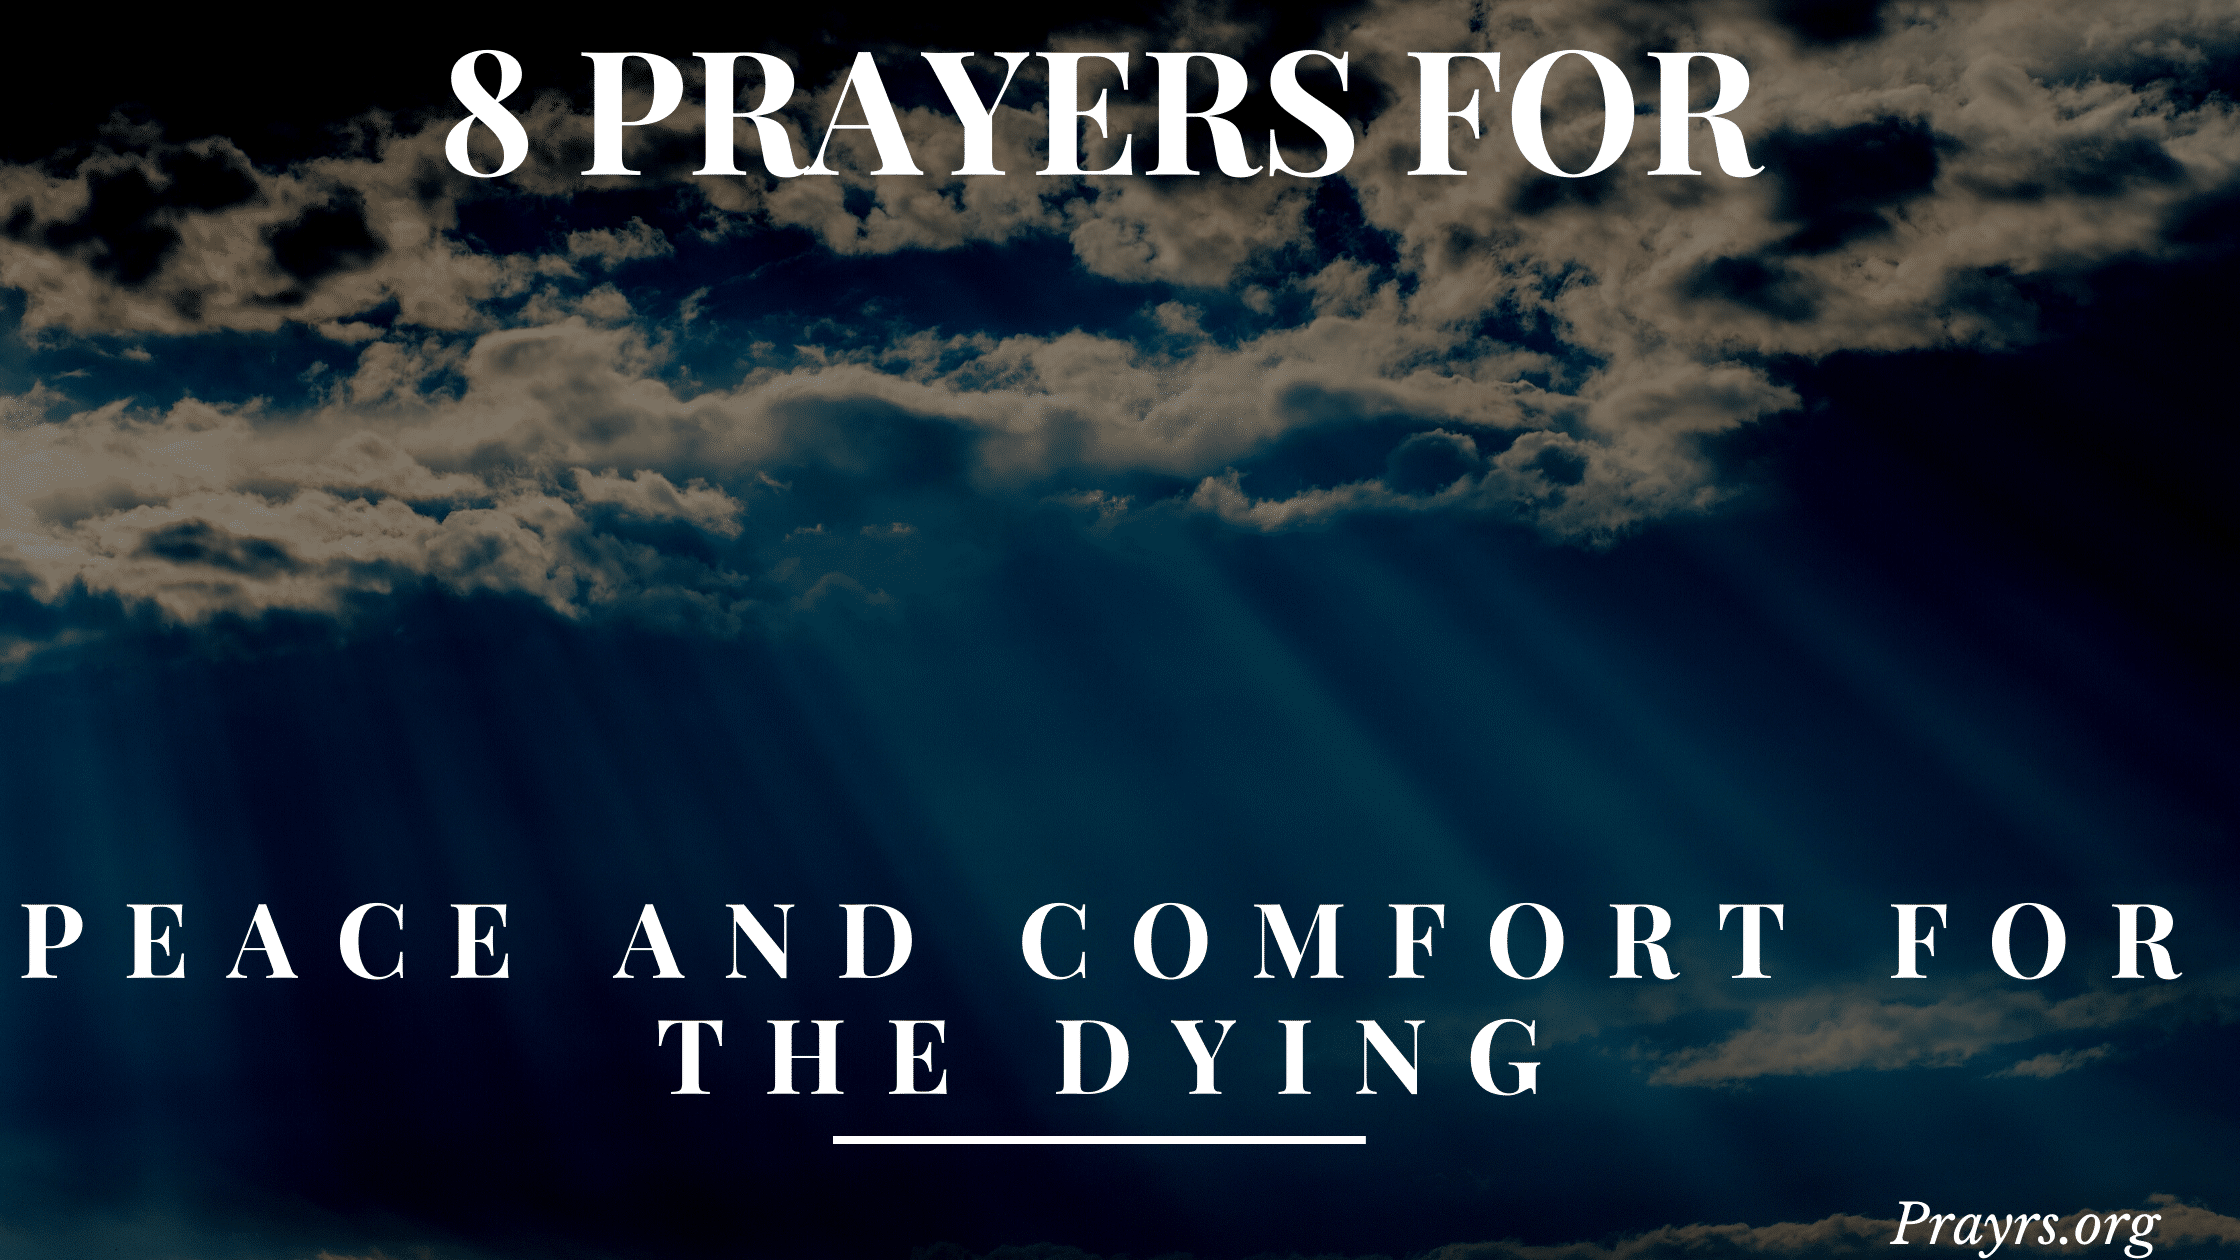 Prayers for Peace and Comfort for the Dying